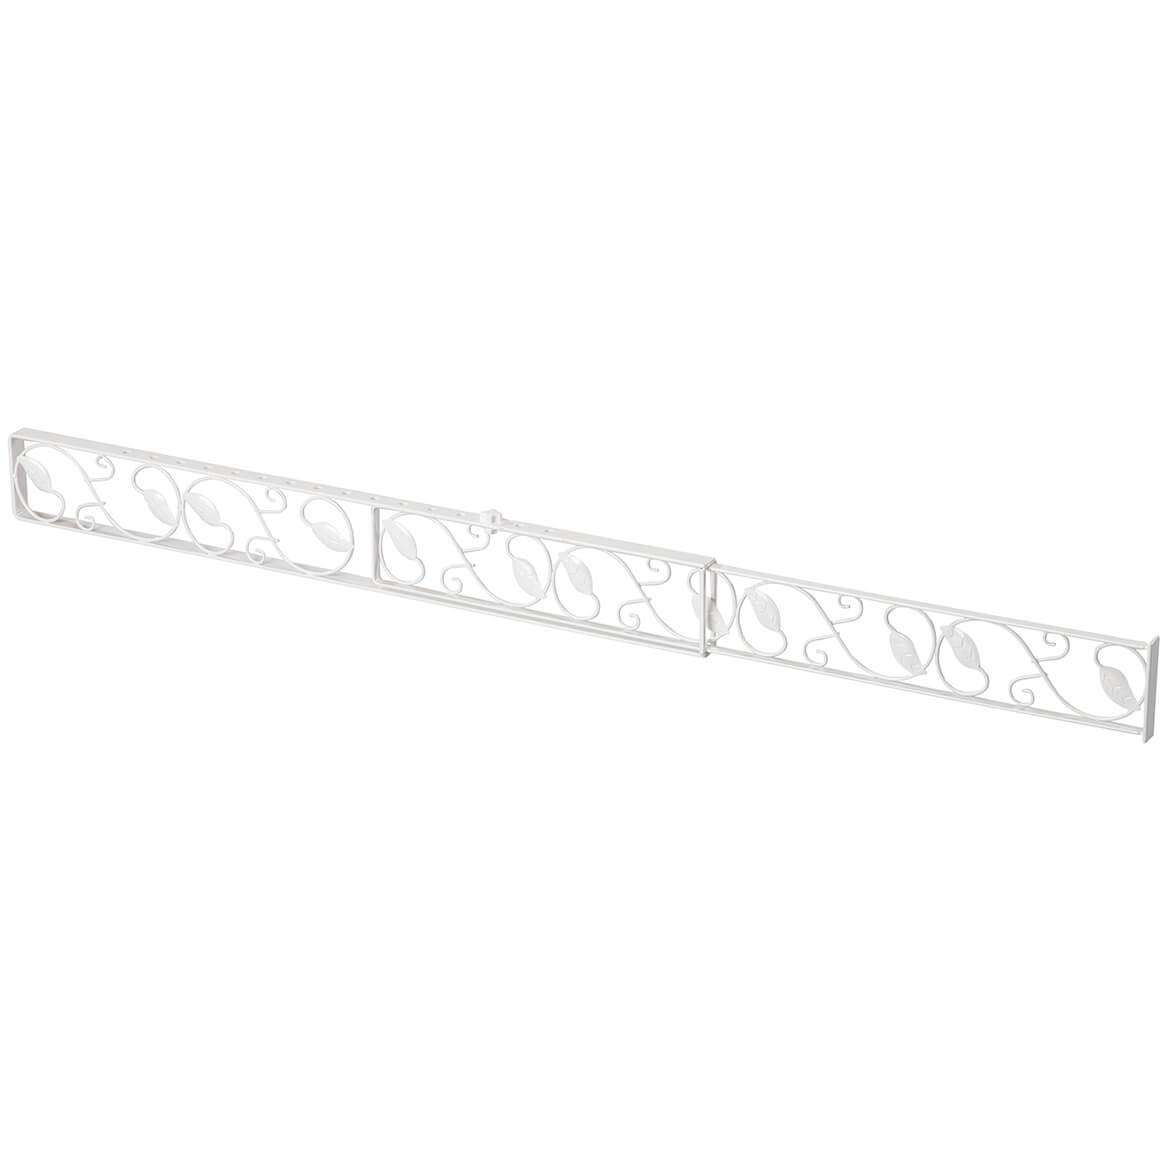 U.S. Patrol ZB8095WHI White Sliding Door Lock BAR by U.S. Patrol